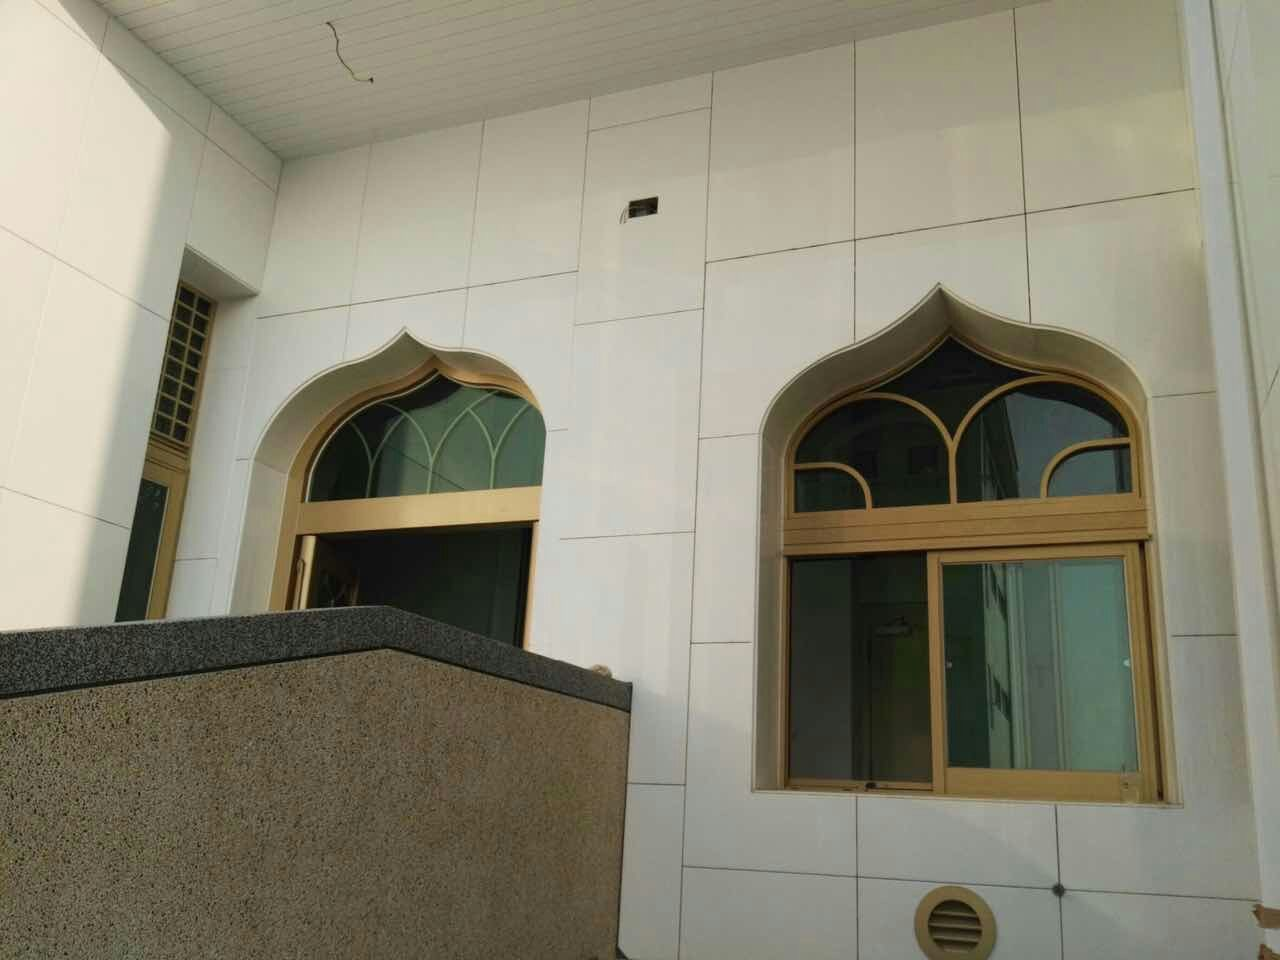 The mosque construction with microcrystal stone